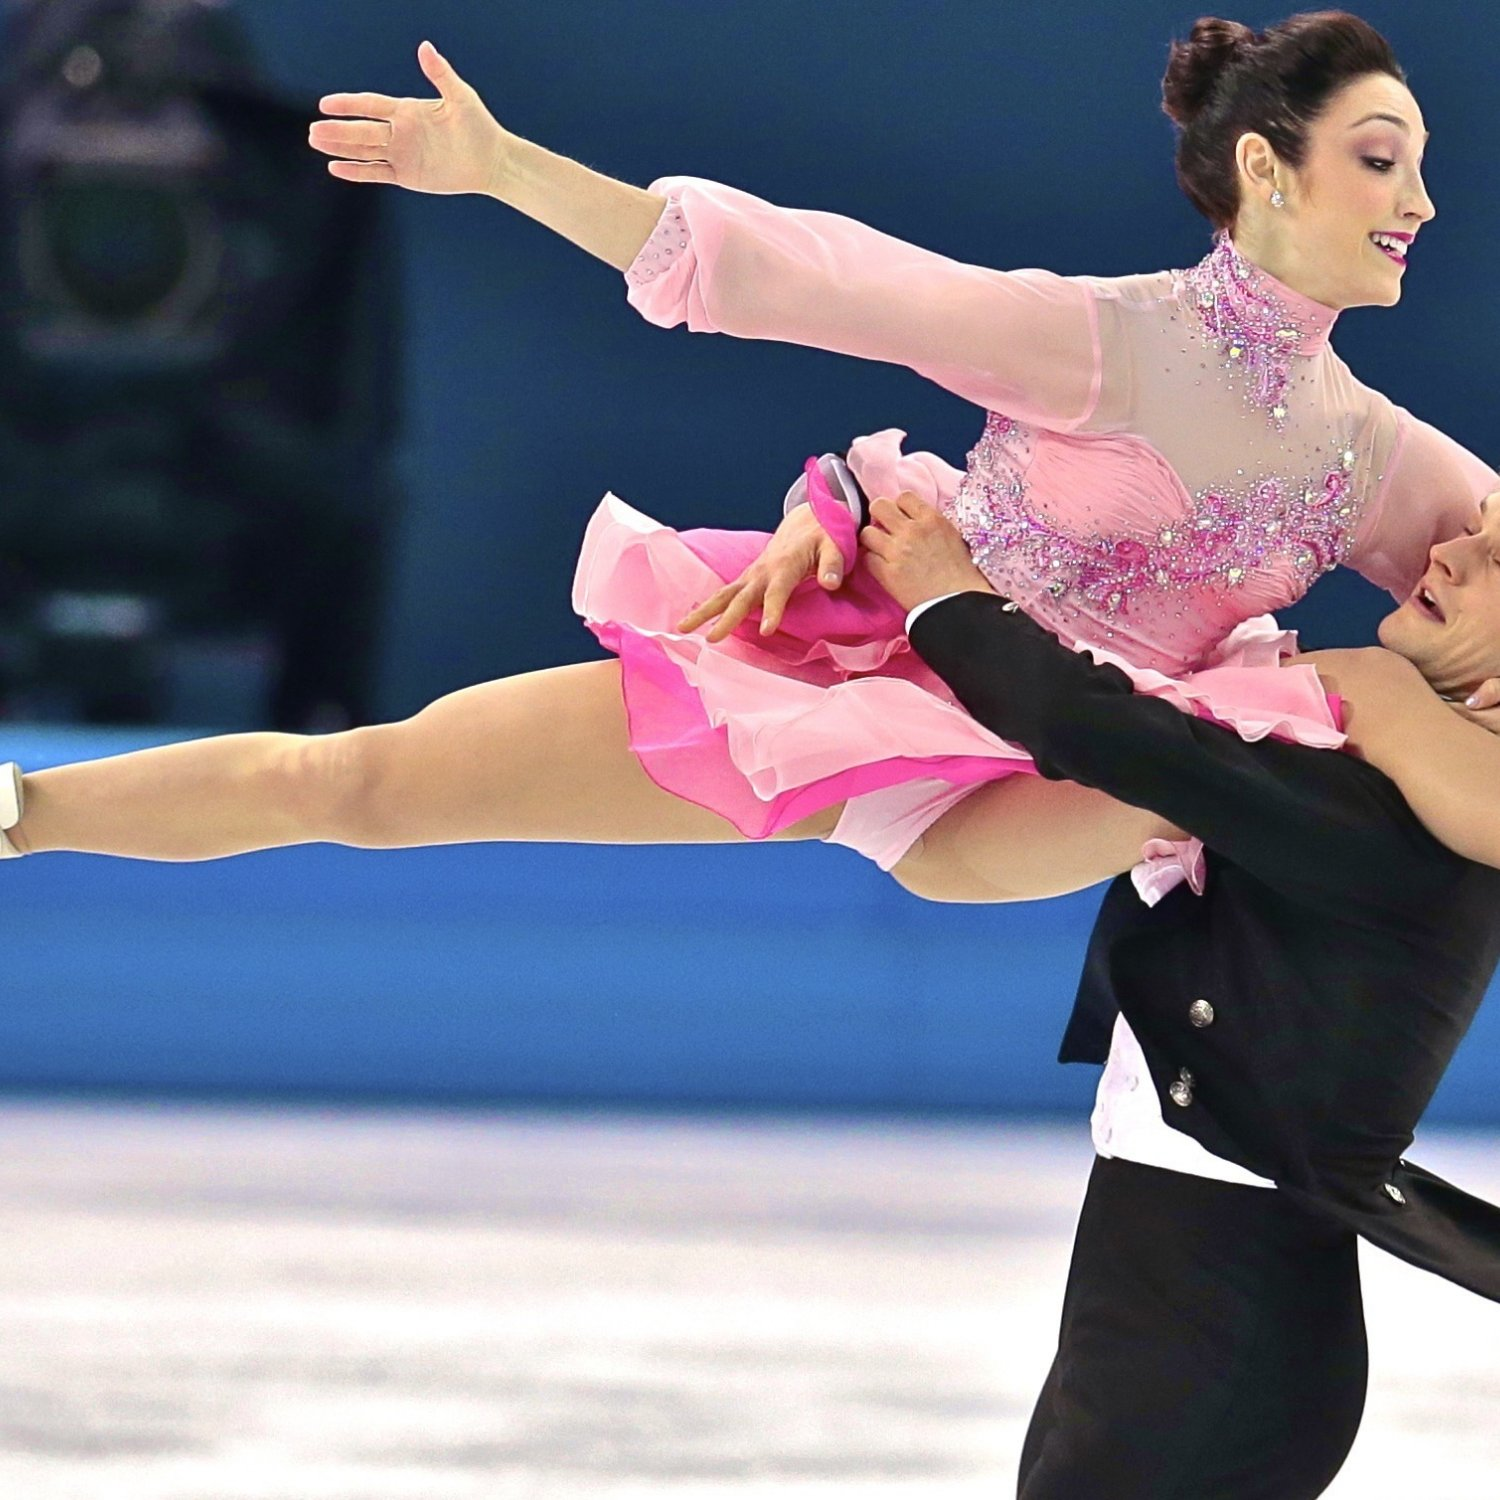 Olympic Ice Dancing 2014: Team Trophy Short Results